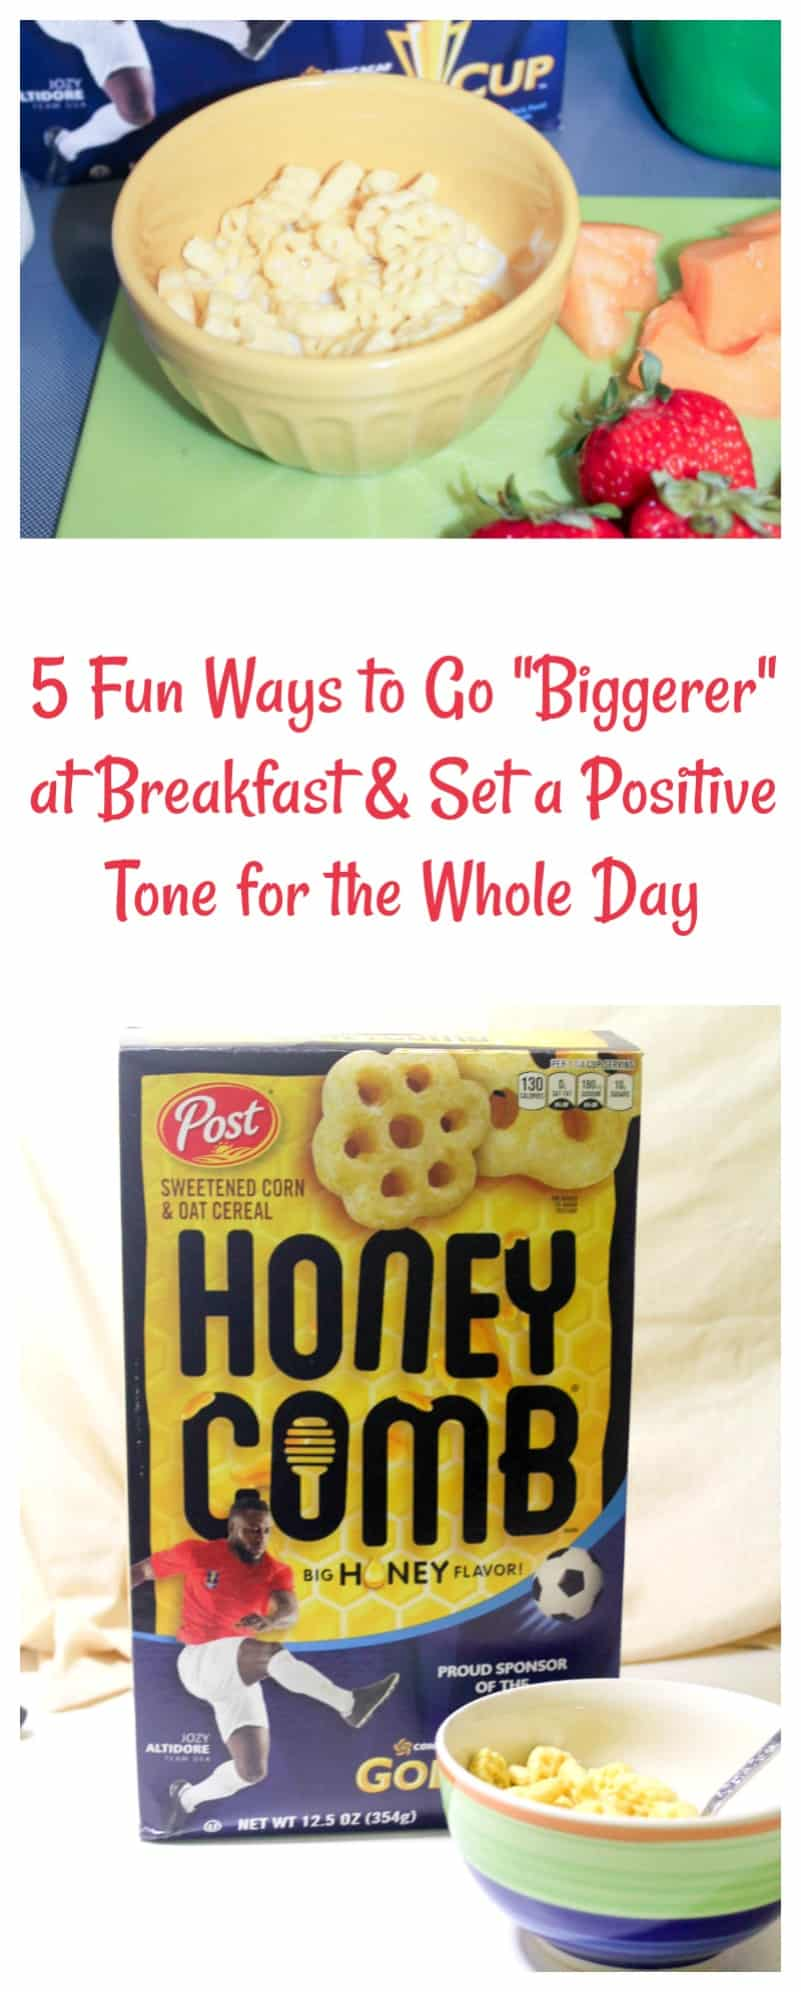 Check out 5 fun ways to \